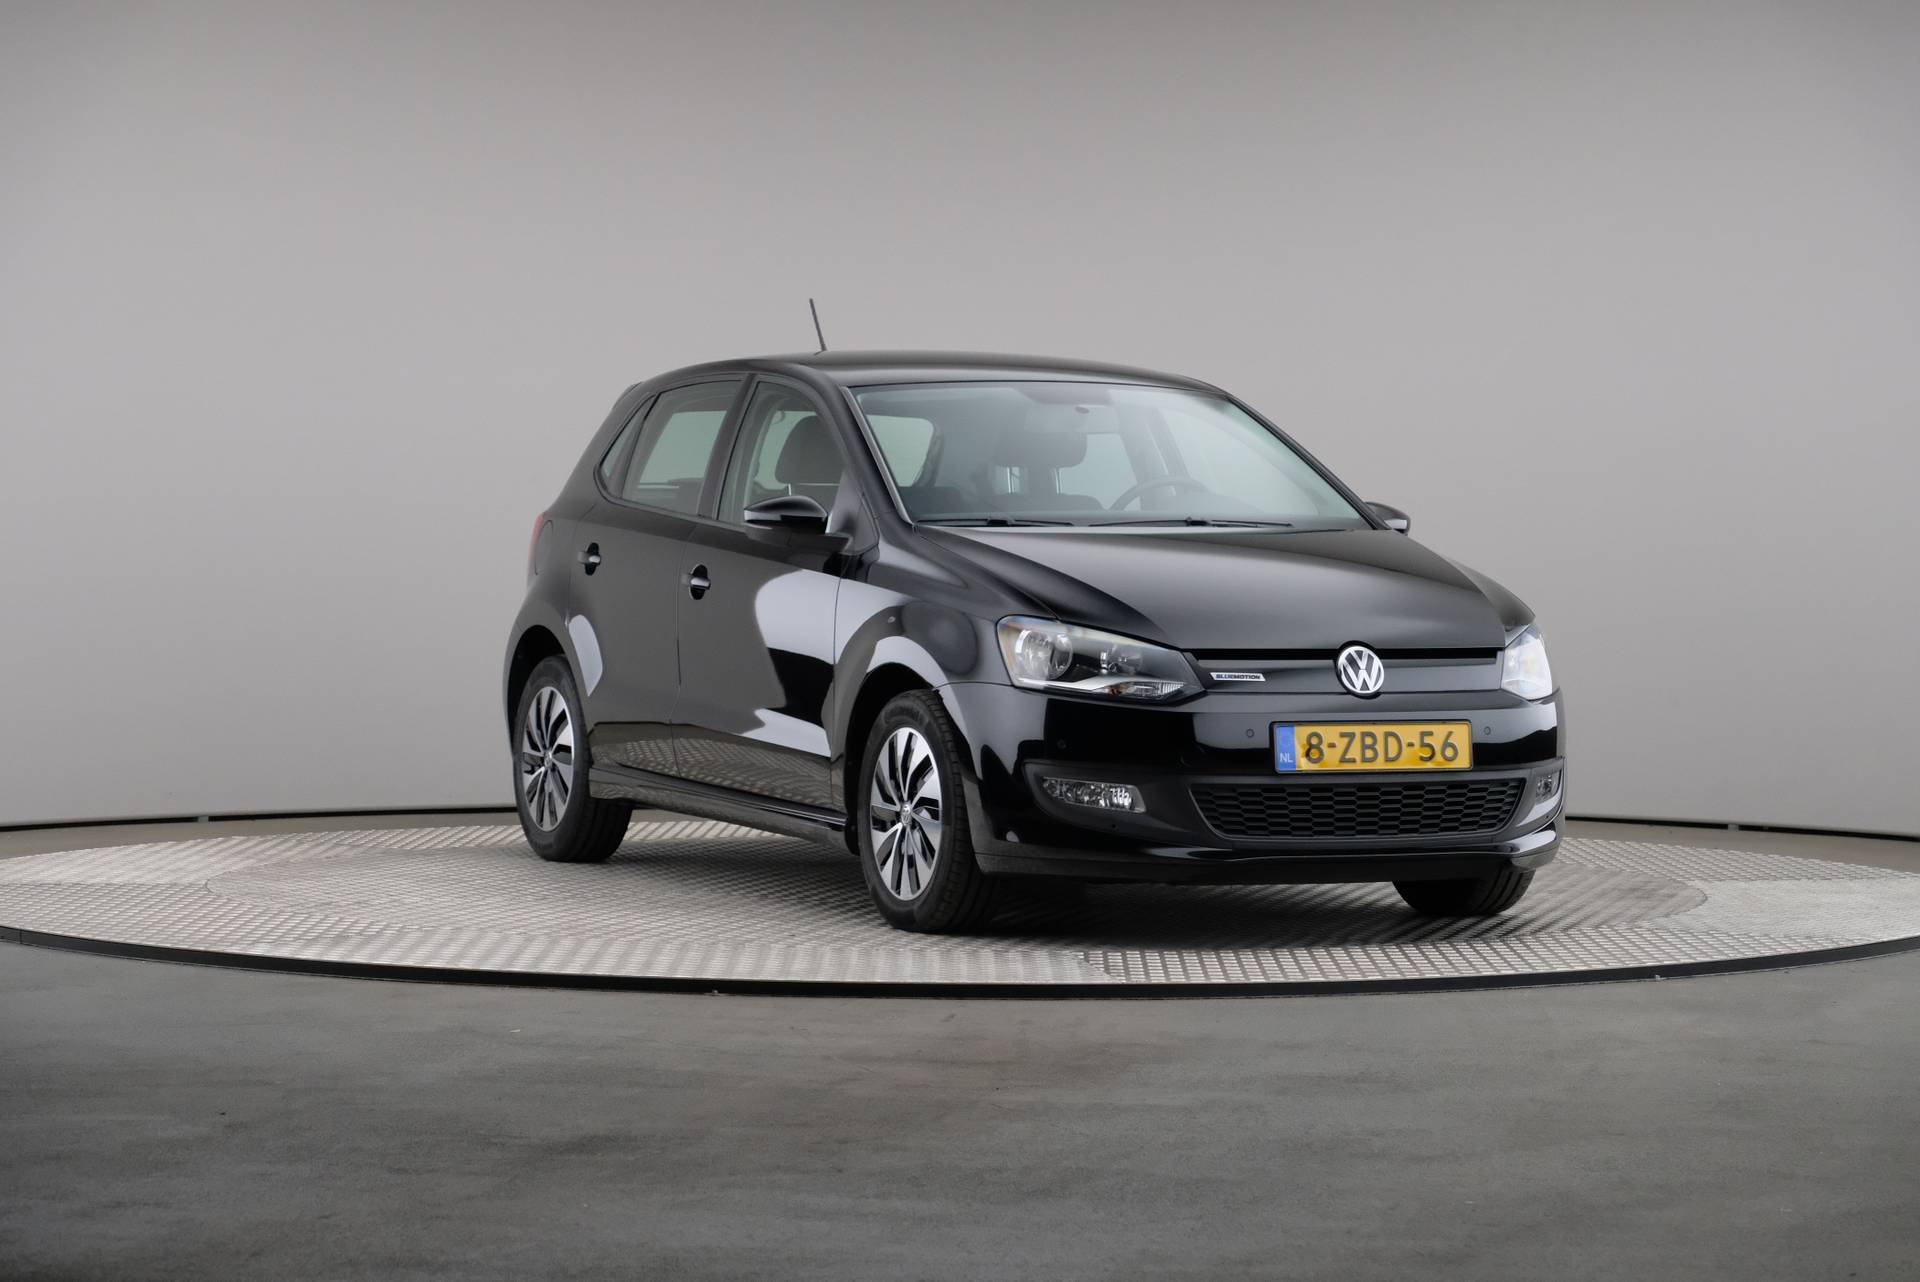 Volkswagen Polo 1.4 TDI BlueMotion, Executive, Airco, Navigatie, 360-image30